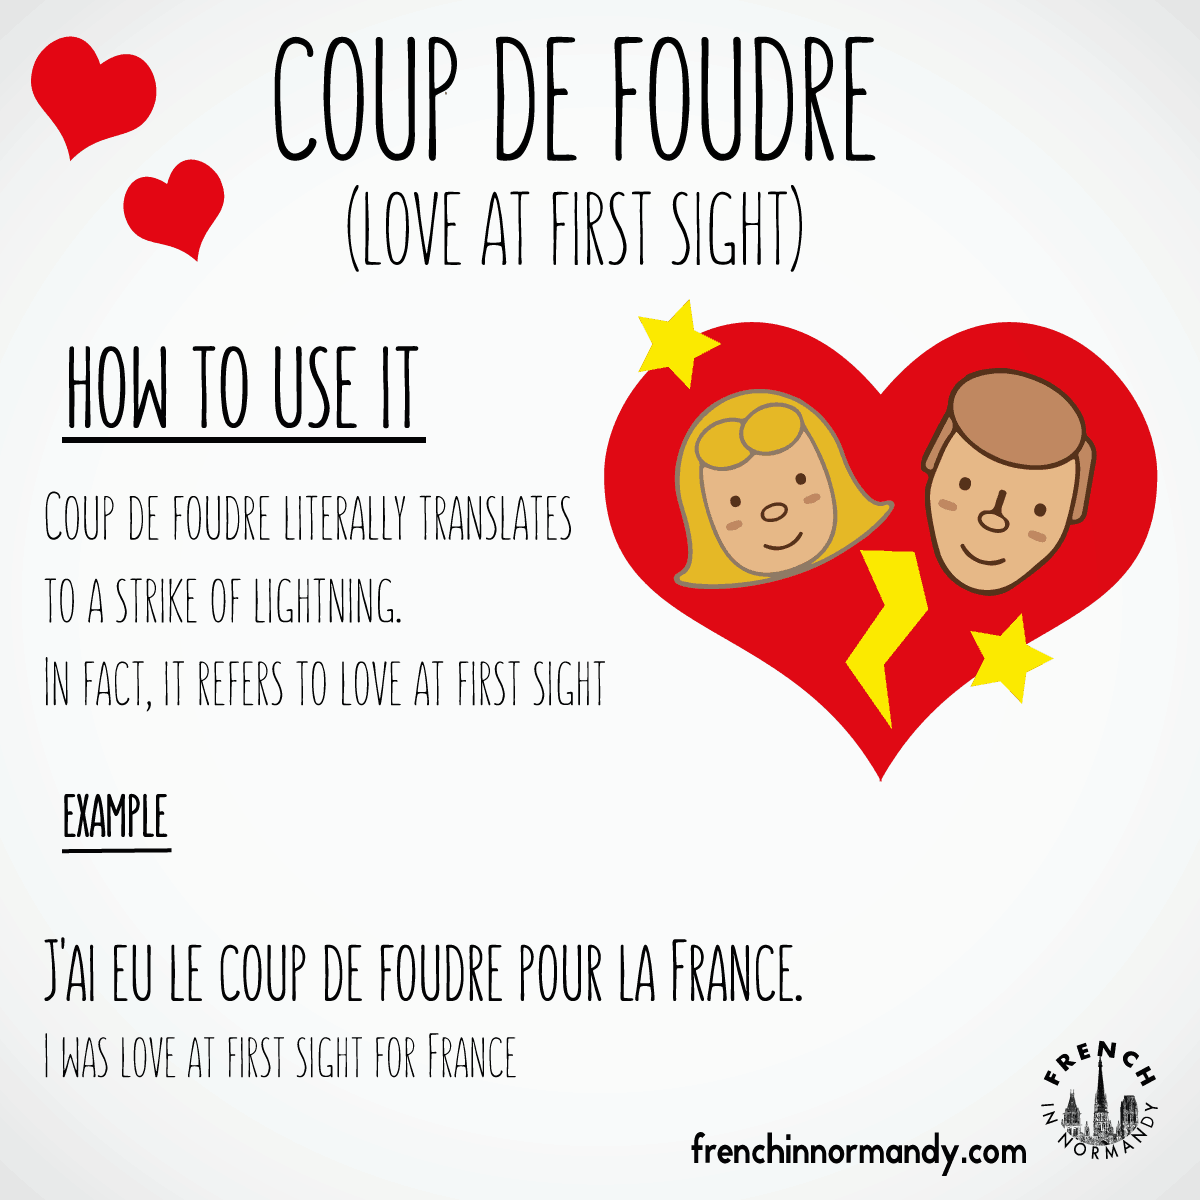 image10-coupdefoudre